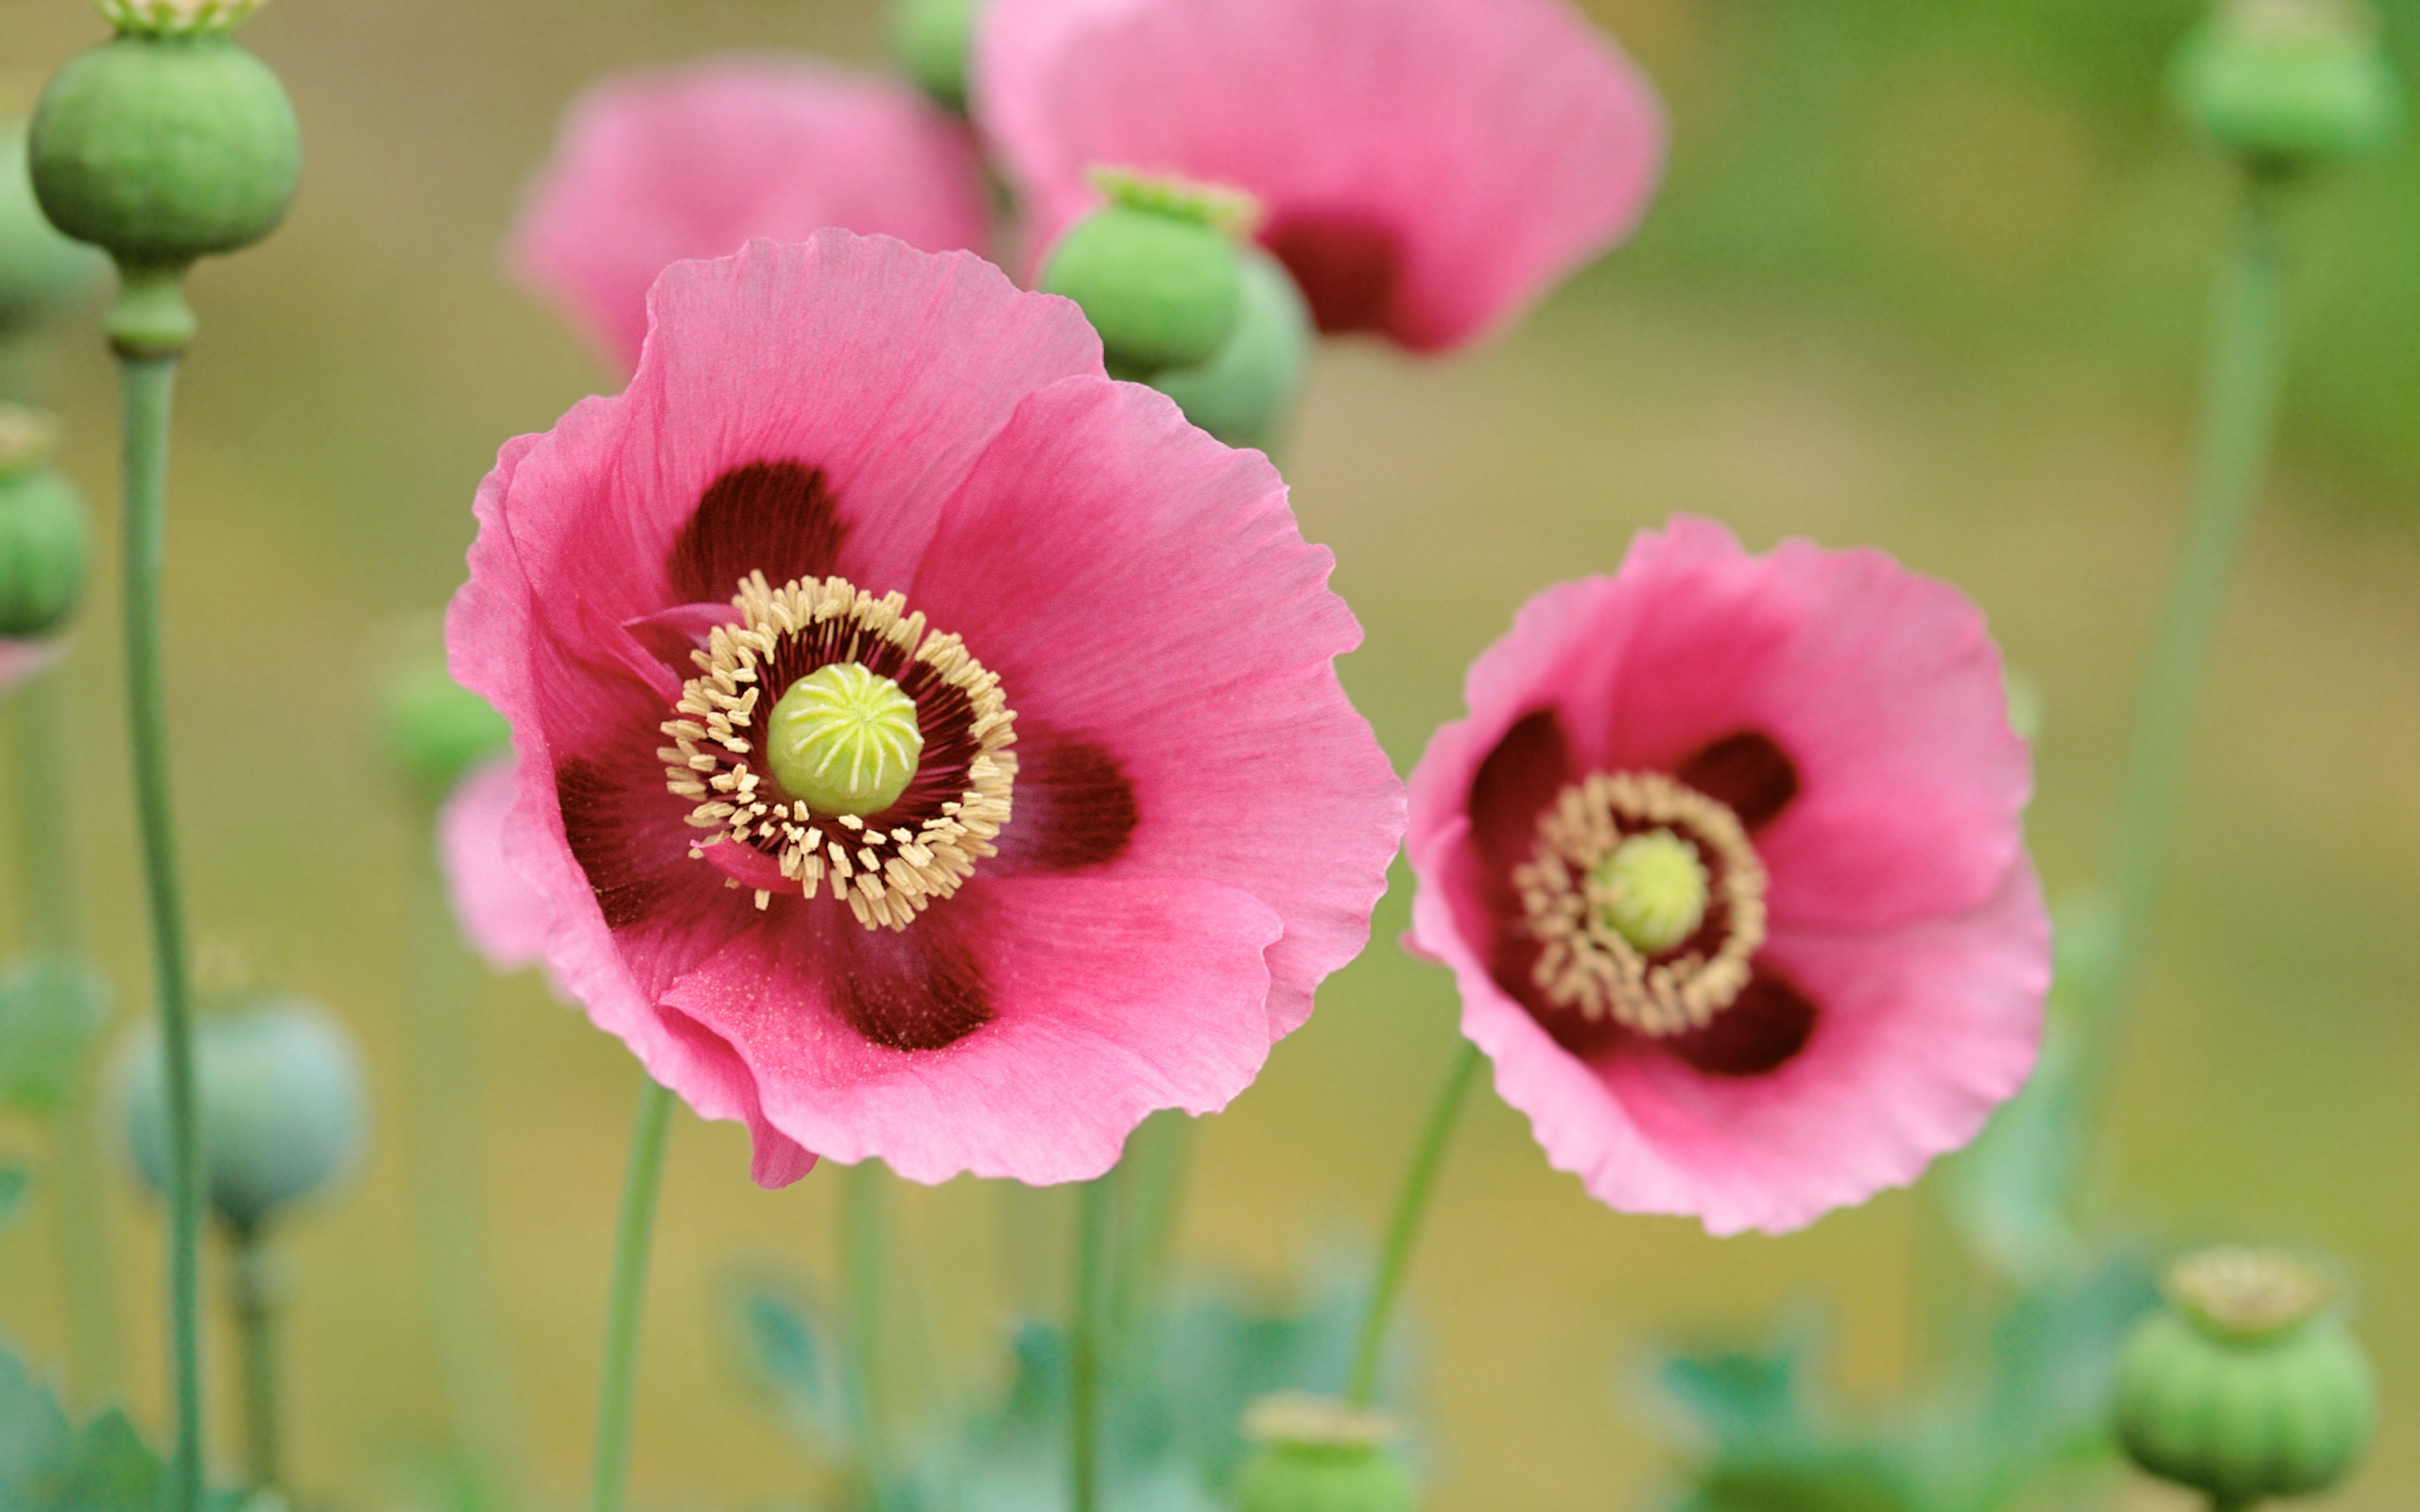 Poppies flowers wallpapers in jpg format for free download poppies flowers wallpapers mightylinksfo